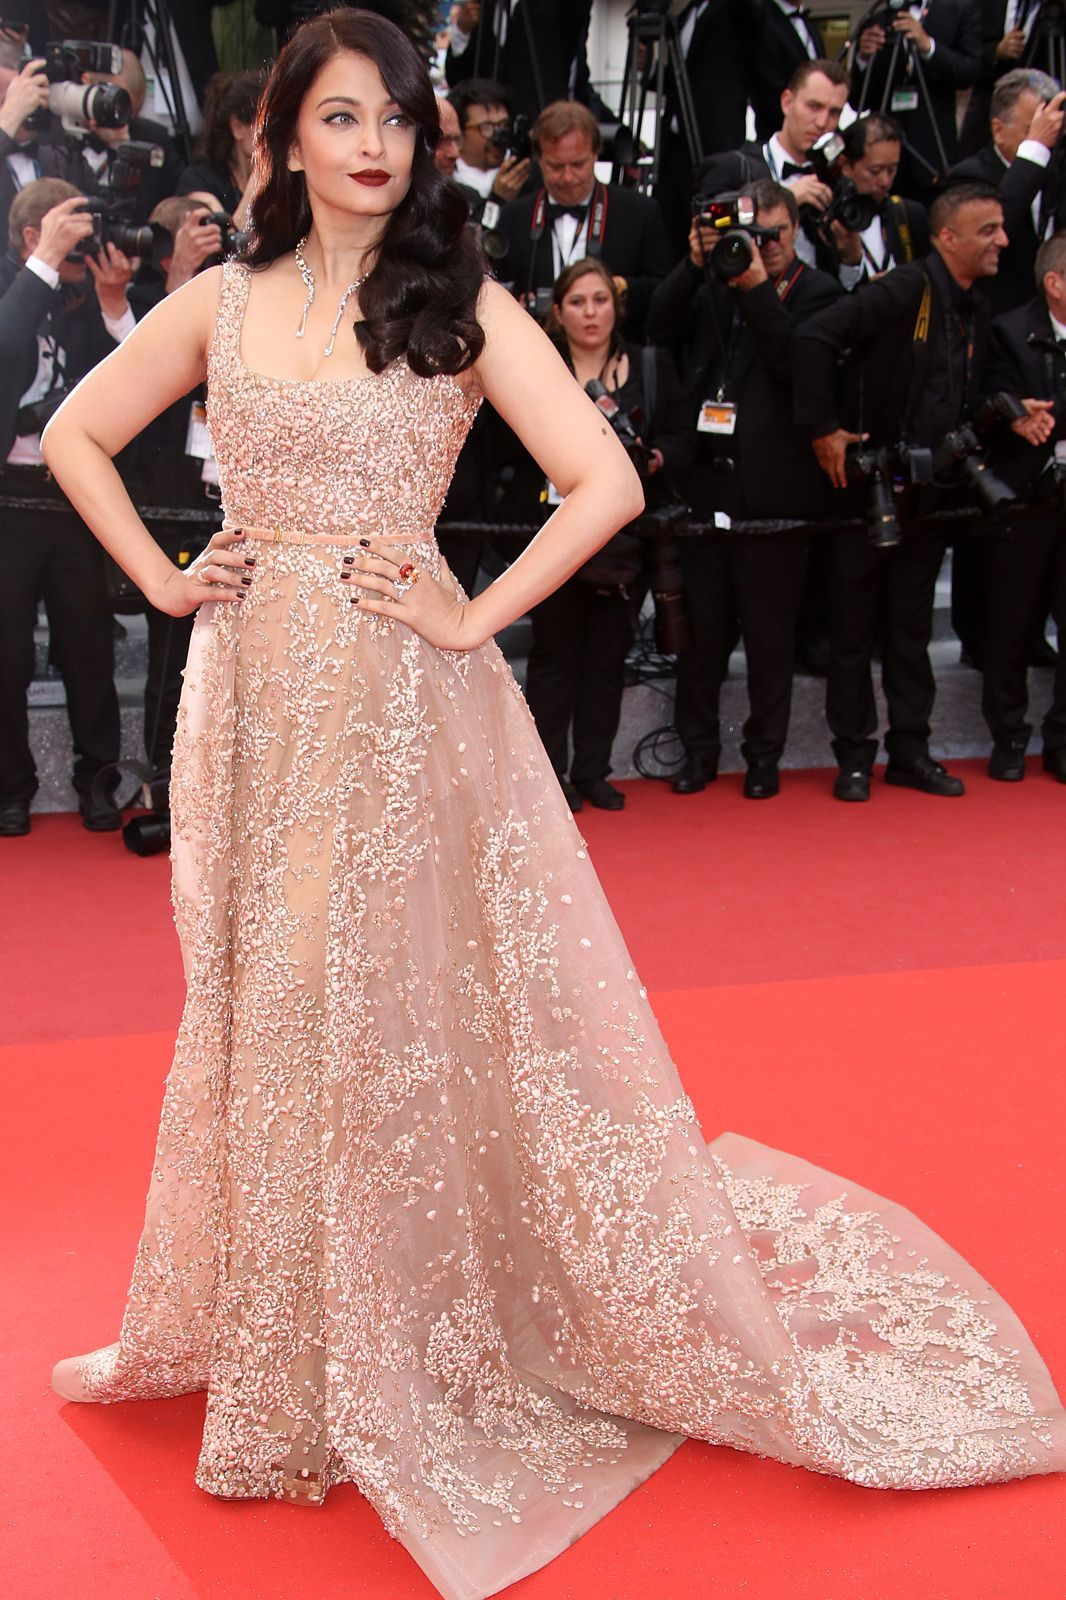 All The Looks From Cannes That Made Us Actually Want To Watch The Movies